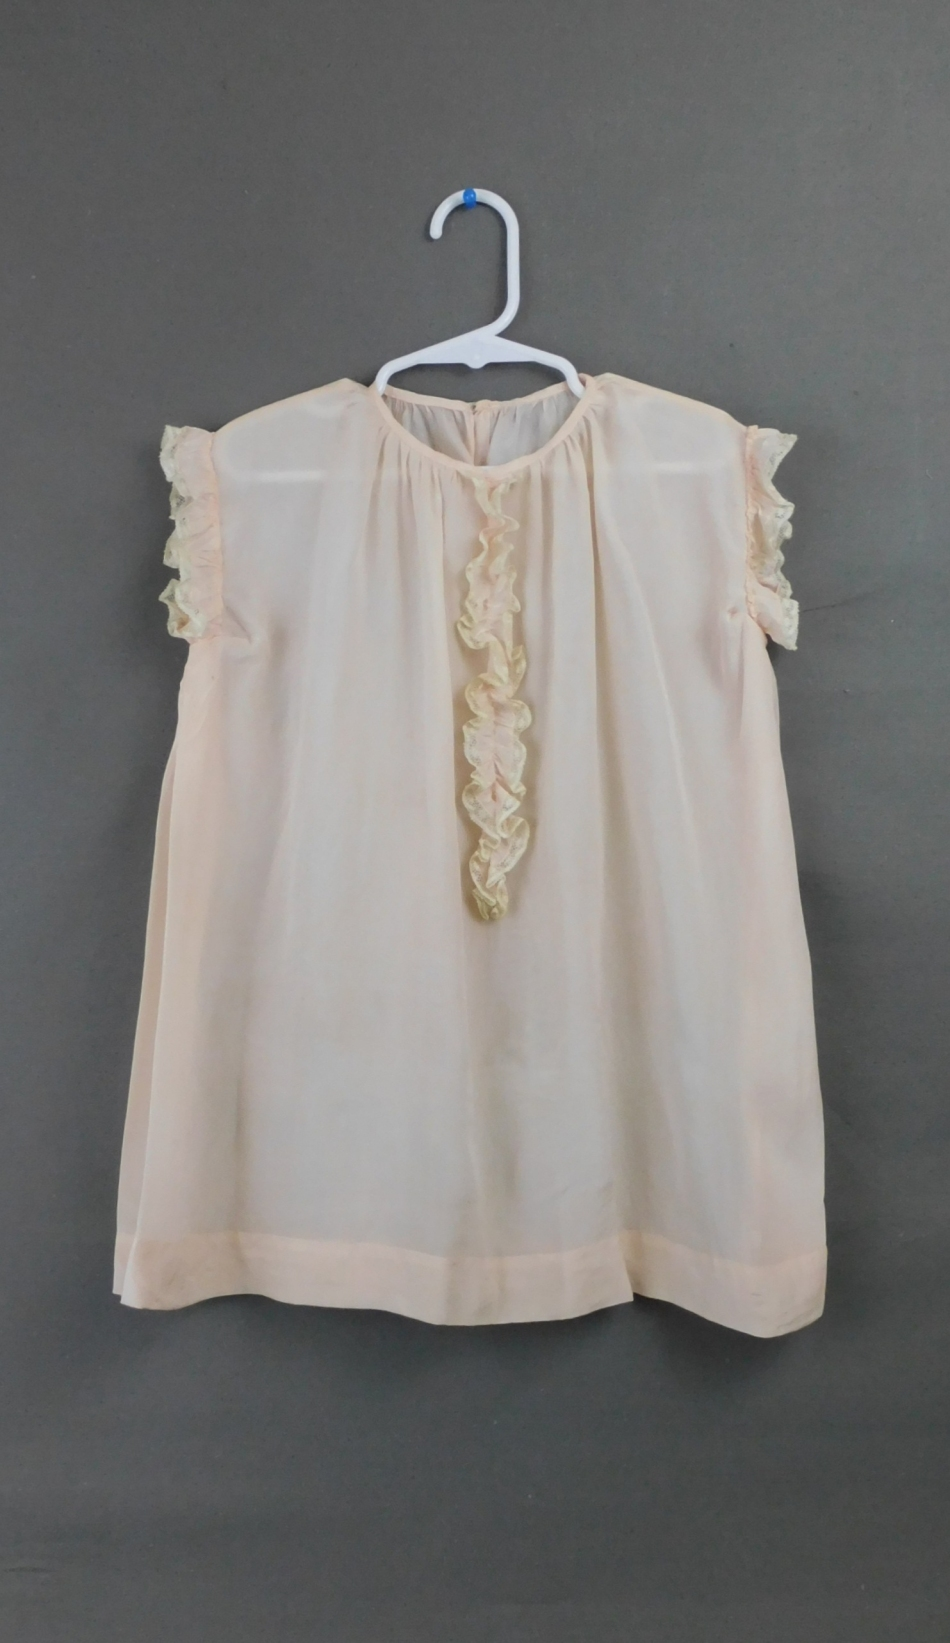 Vintage 1920s Little Girl Silk Dress Pale Peach with Ruffled and Lace, 28 inch chest